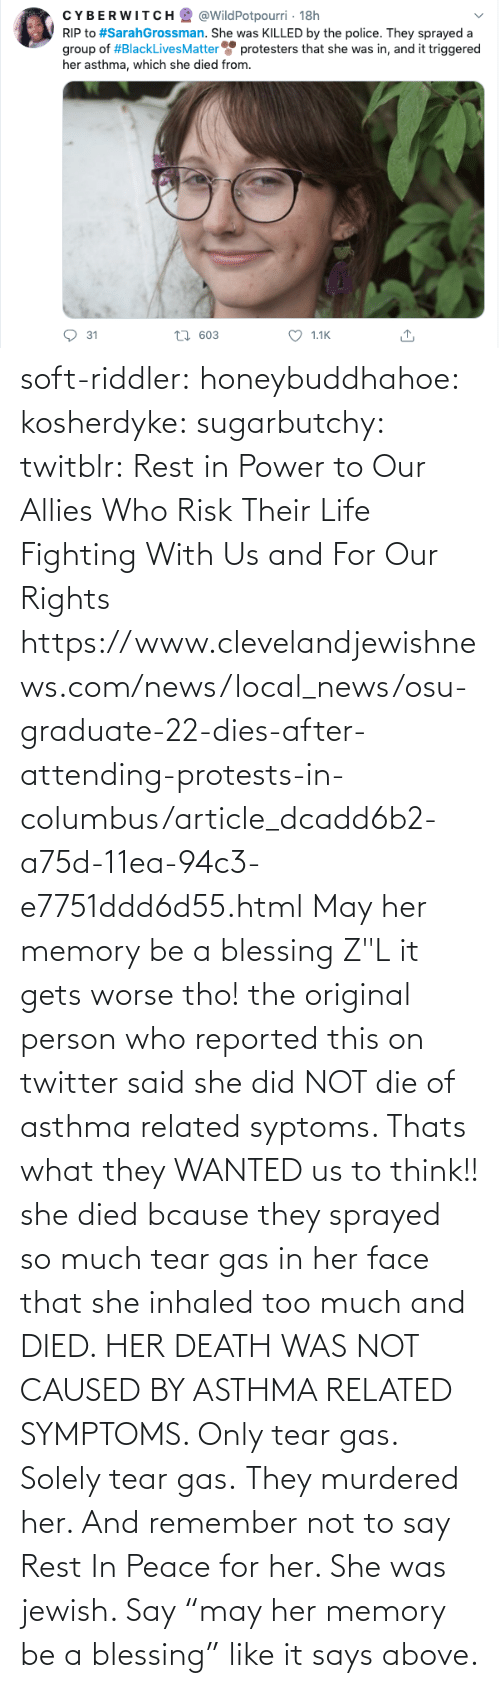 "src: soft-riddler:  honeybuddhahoe:  kosherdyke:  sugarbutchy:  twitblr: Rest in Power to Our Allies Who Risk Their Life Fighting With Us and For Our Rights https://www.clevelandjewishnews.com/news/local_news/osu-graduate-22-dies-after-attending-protests-in-columbus/article_dcadd6b2-a75d-11ea-94c3-e7751ddd6d55.html    May her memory be a blessing Z""L  it gets worse tho! the original person who reported this on twitter said she did NOT die of asthma related syptoms. Thats what they WANTED us to think!! she died bcause they sprayed so much tear gas in her face that she inhaled too much and DIED. HER DEATH WAS NOT CAUSED BY ASTHMA RELATED SYMPTOMS. Only tear gas. Solely tear gas. They murdered her.     And remember not to say Rest In Peace for her. She was jewish. Say ""may her memory be a blessing"" like it says above."